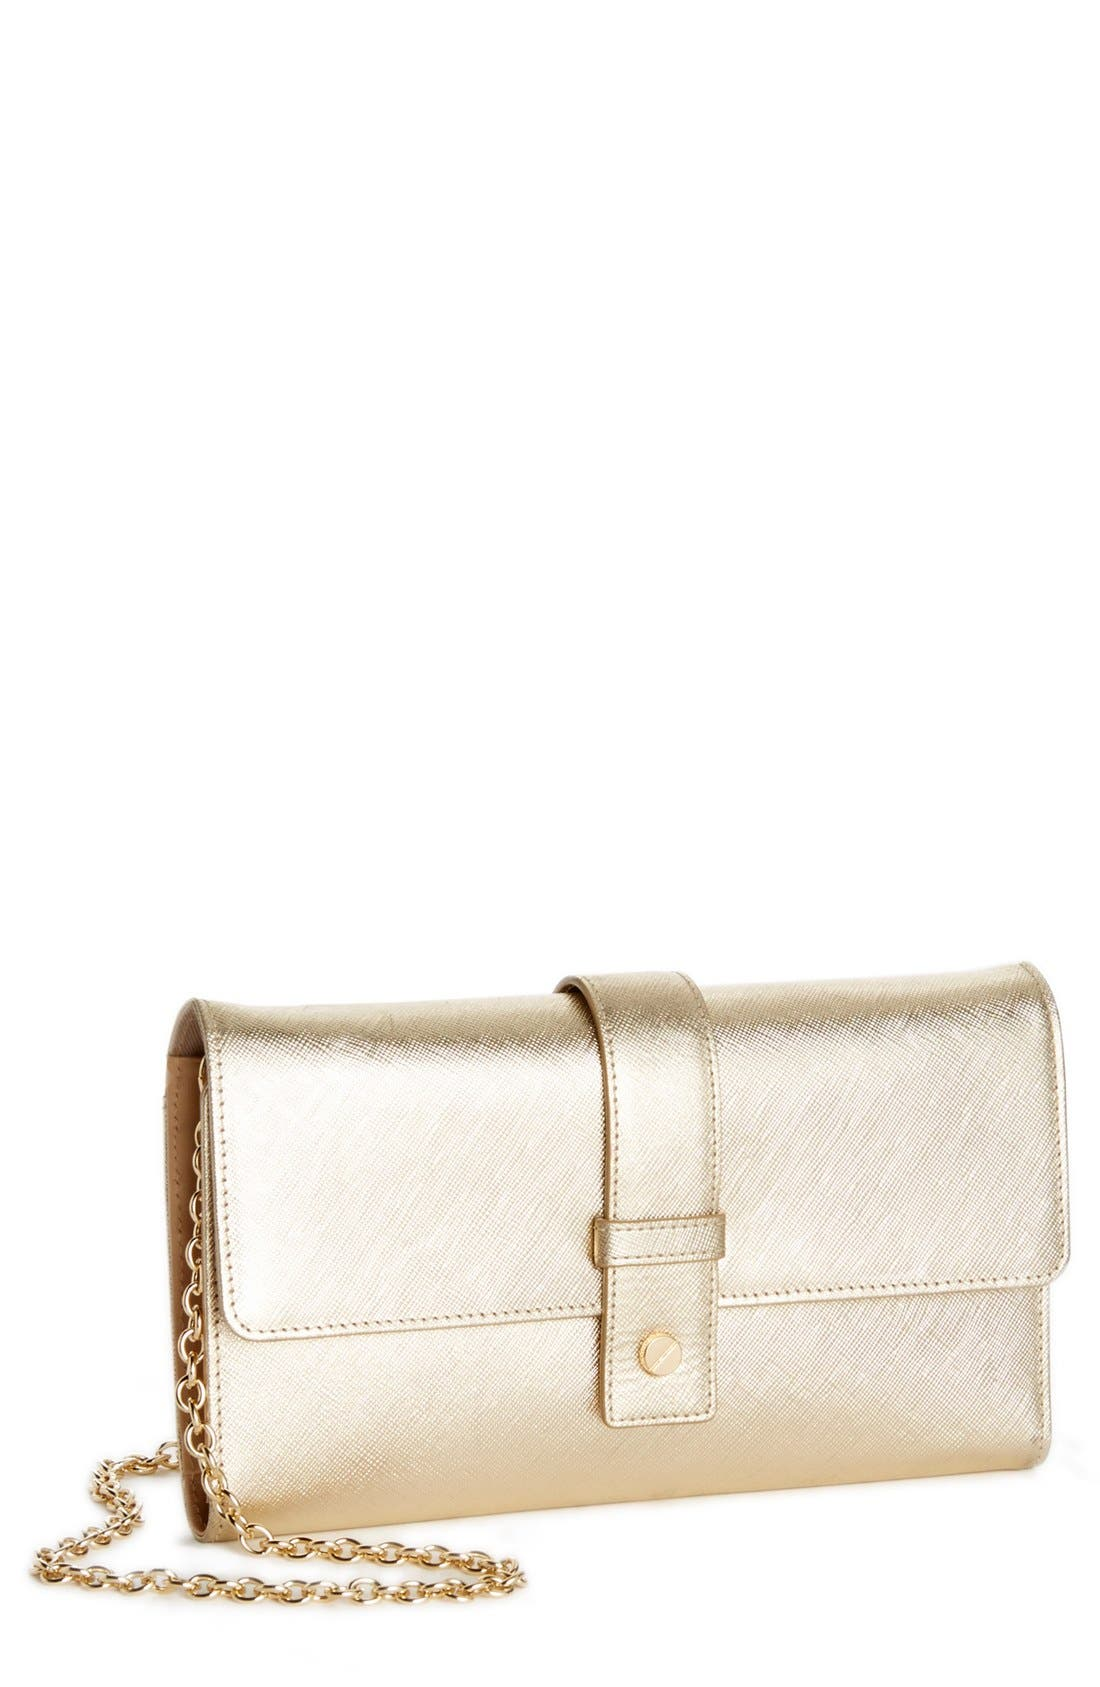 Alternate Image 1 Selected - Halogen® Saffiano Leather Crossbody Clutch Wallet